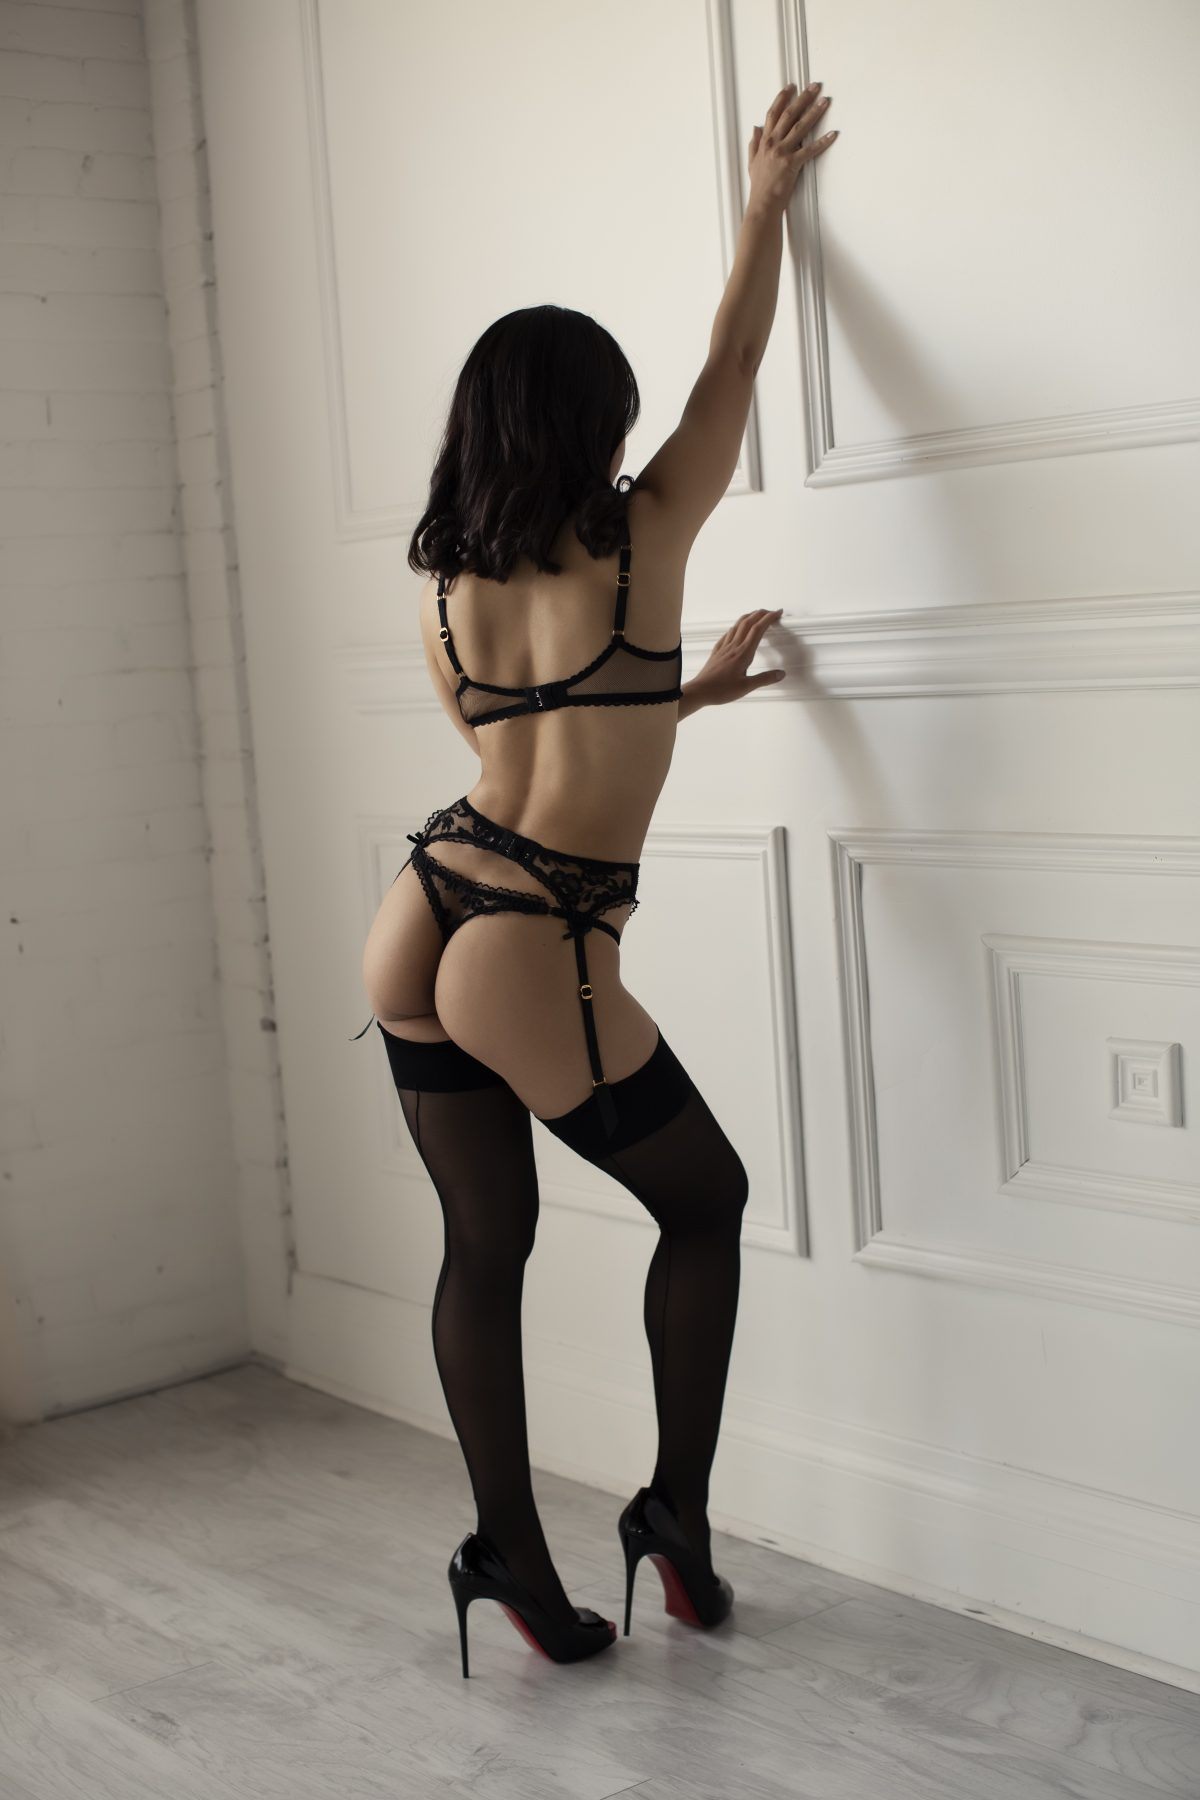 Toronto escorts companion upscale Isys Duo Couple-friendly Disability-friendly Non-smoking Young Slender Petite Natural Raven-Haired South Asian None